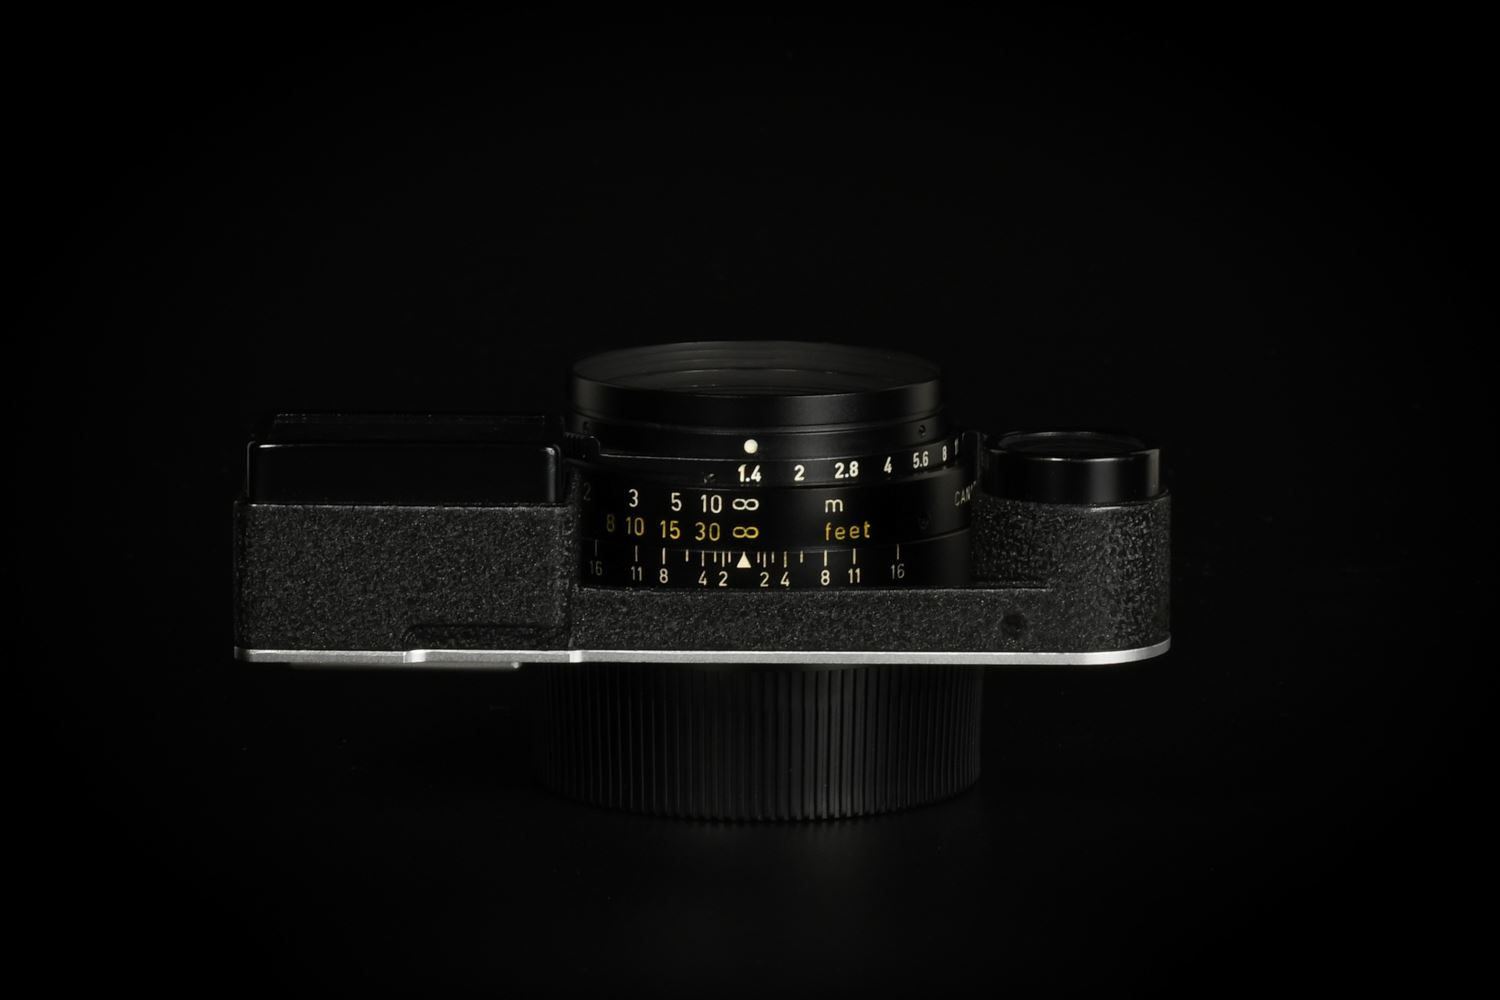 Picture of Leica Summilux-M 35mm f/1.4 Ver.2 Infinity Lock M3 Black Paint